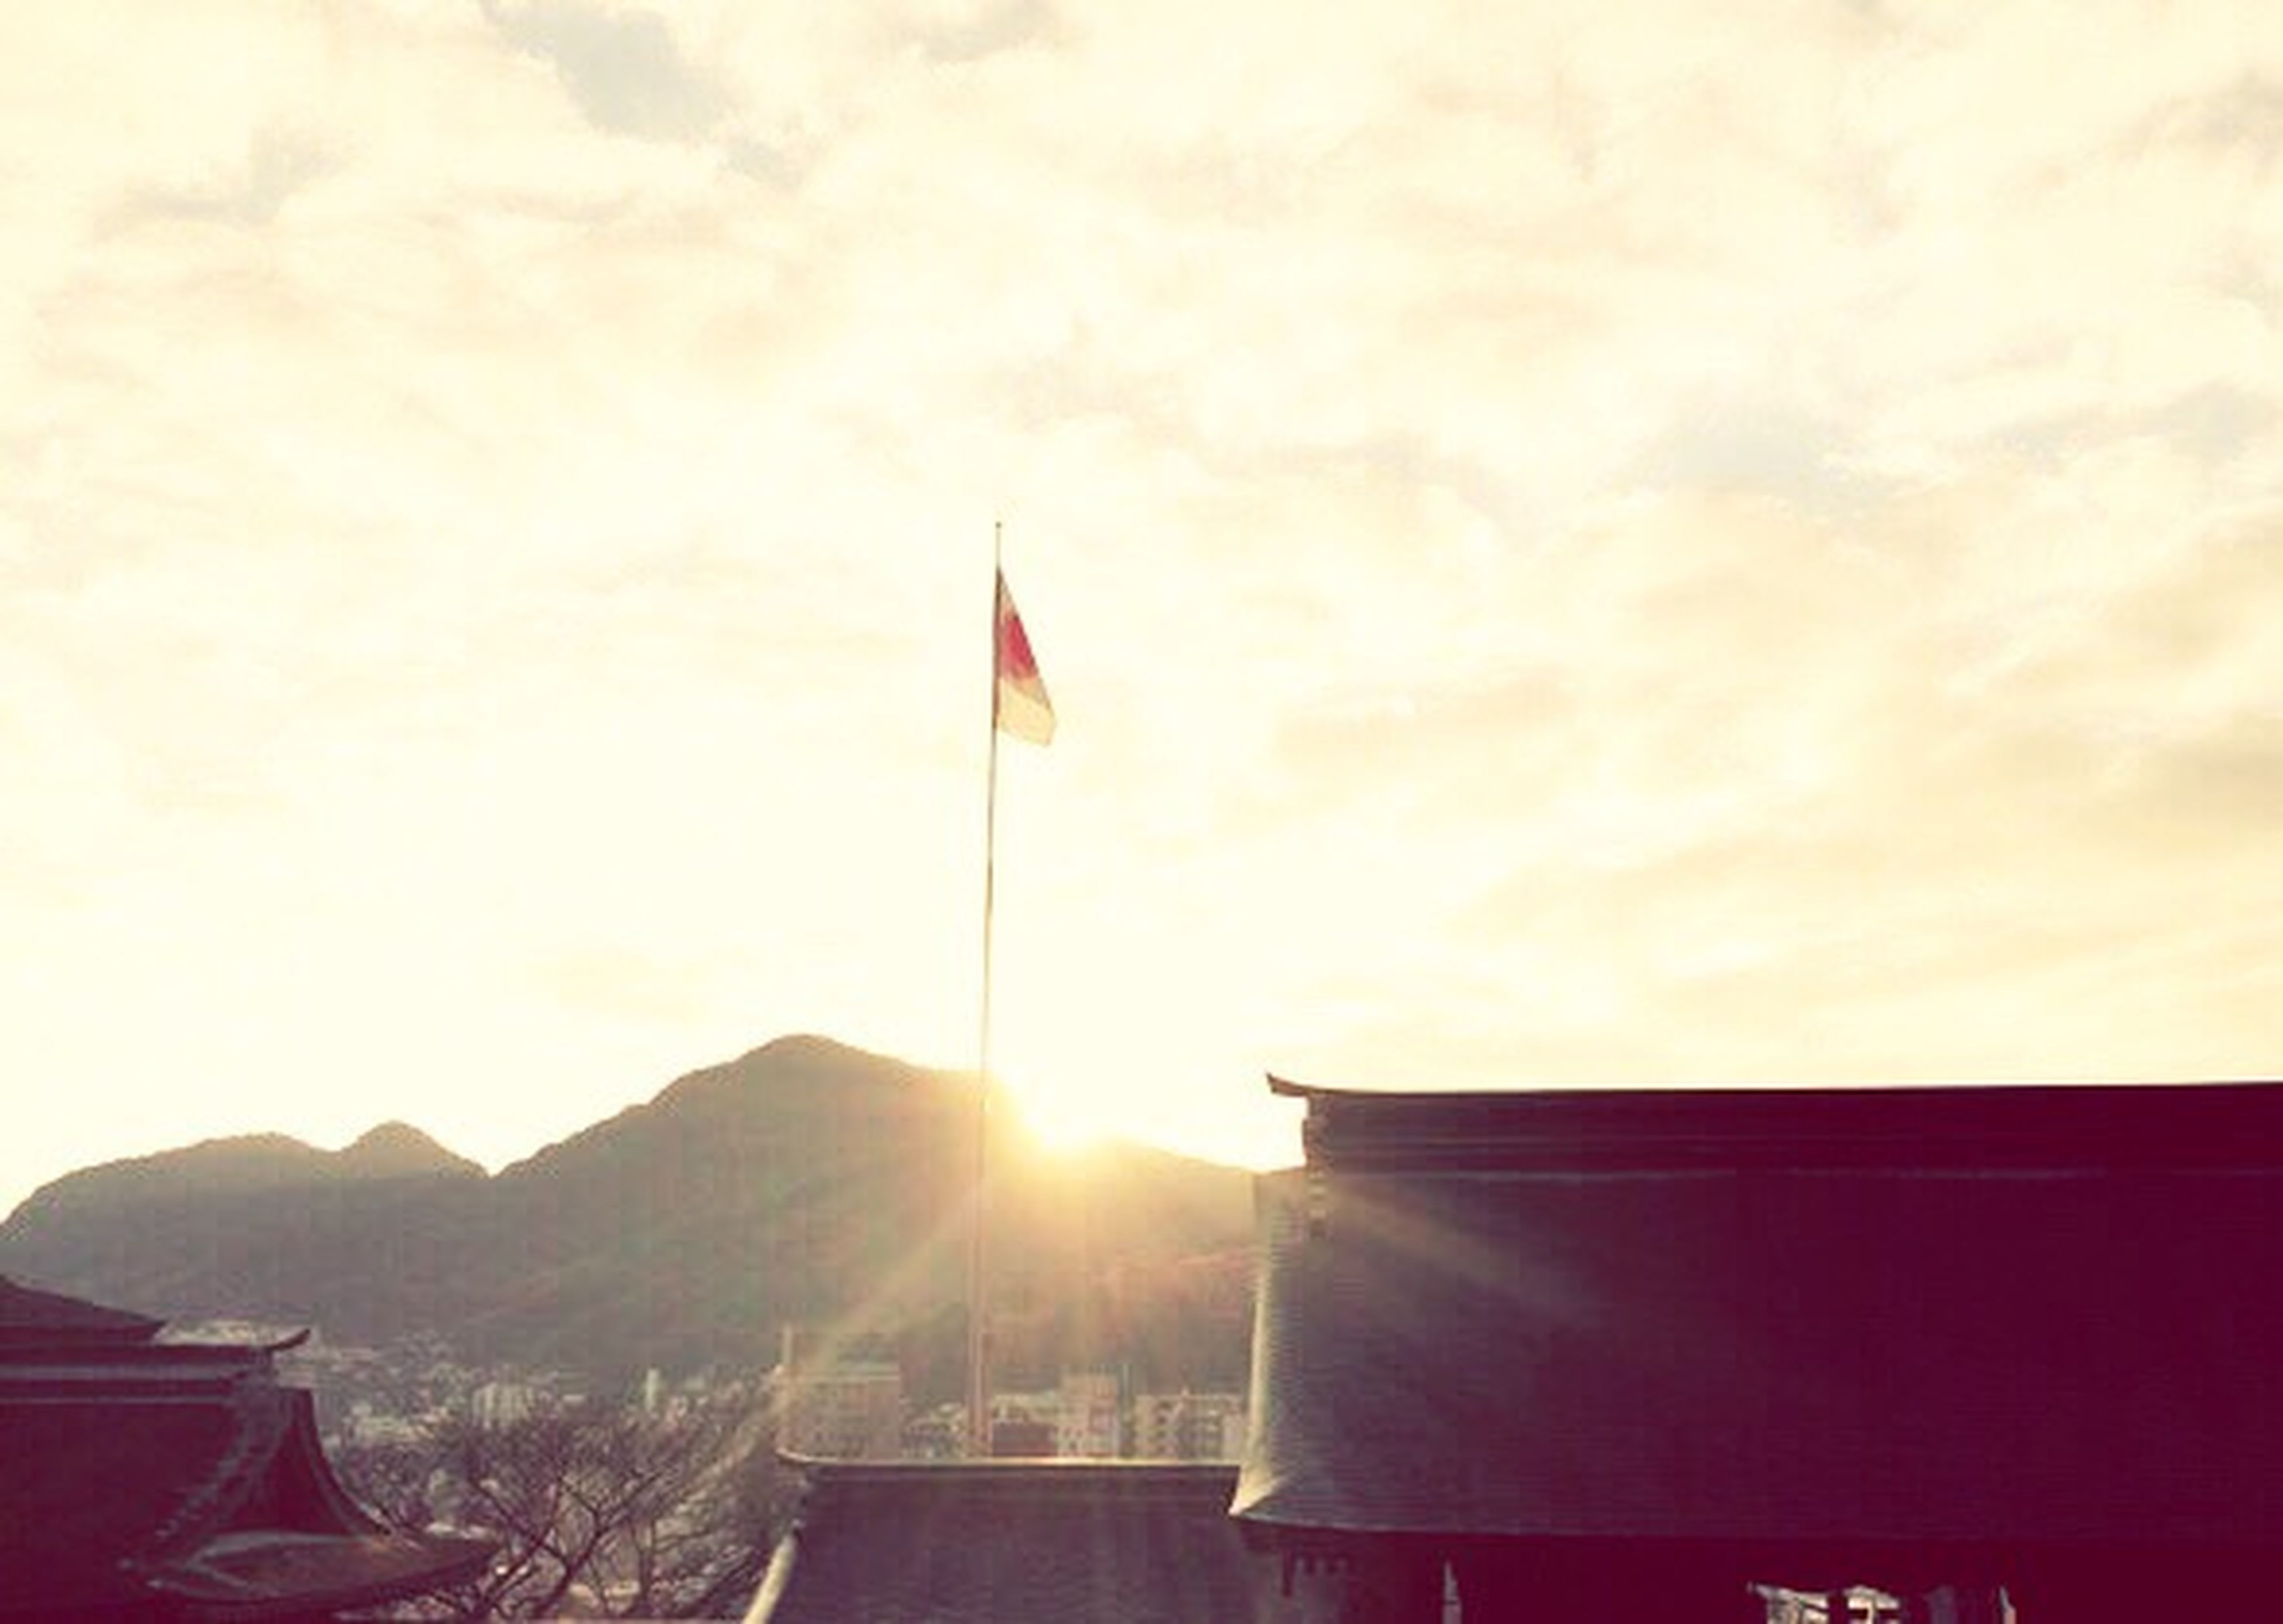 flag, patriotism, no people, sunset, sunlight, sky, nature, day, outdoors